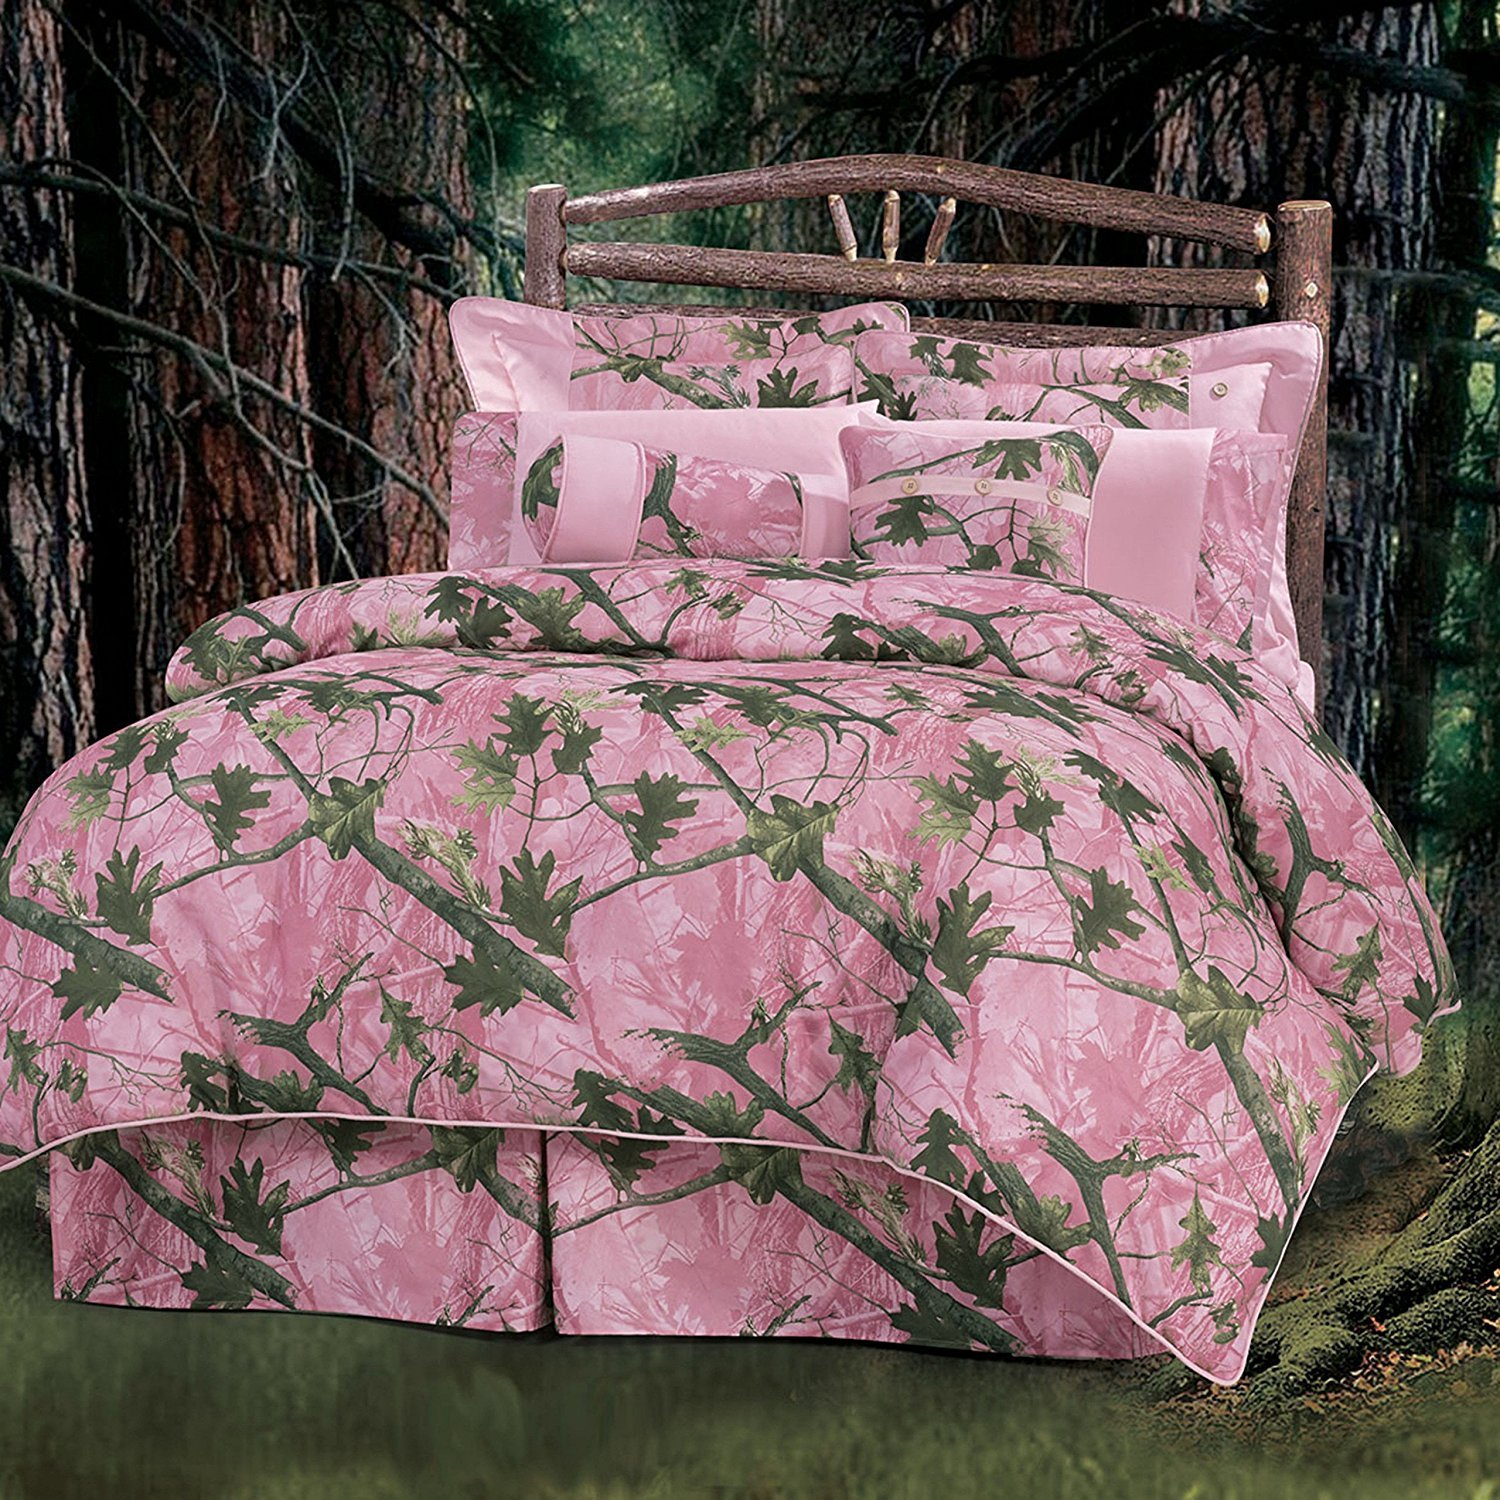 OSD 7pc Girls Pink Camo King Comforter Set, Polyester, Hunting Themed Bedding Camouflage Woods Leaves Branches Forest Lodge Southwest Outdoors Country Hunt Pattern